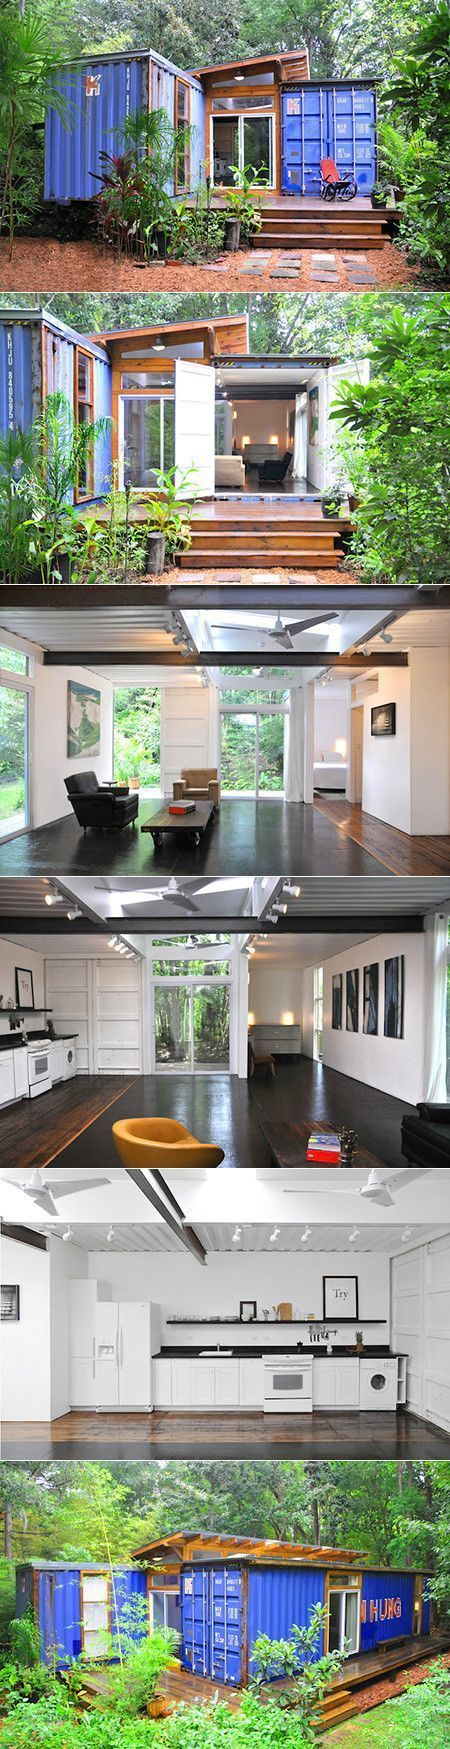 Shipping container homes offer up an economical and interesting space to live in…